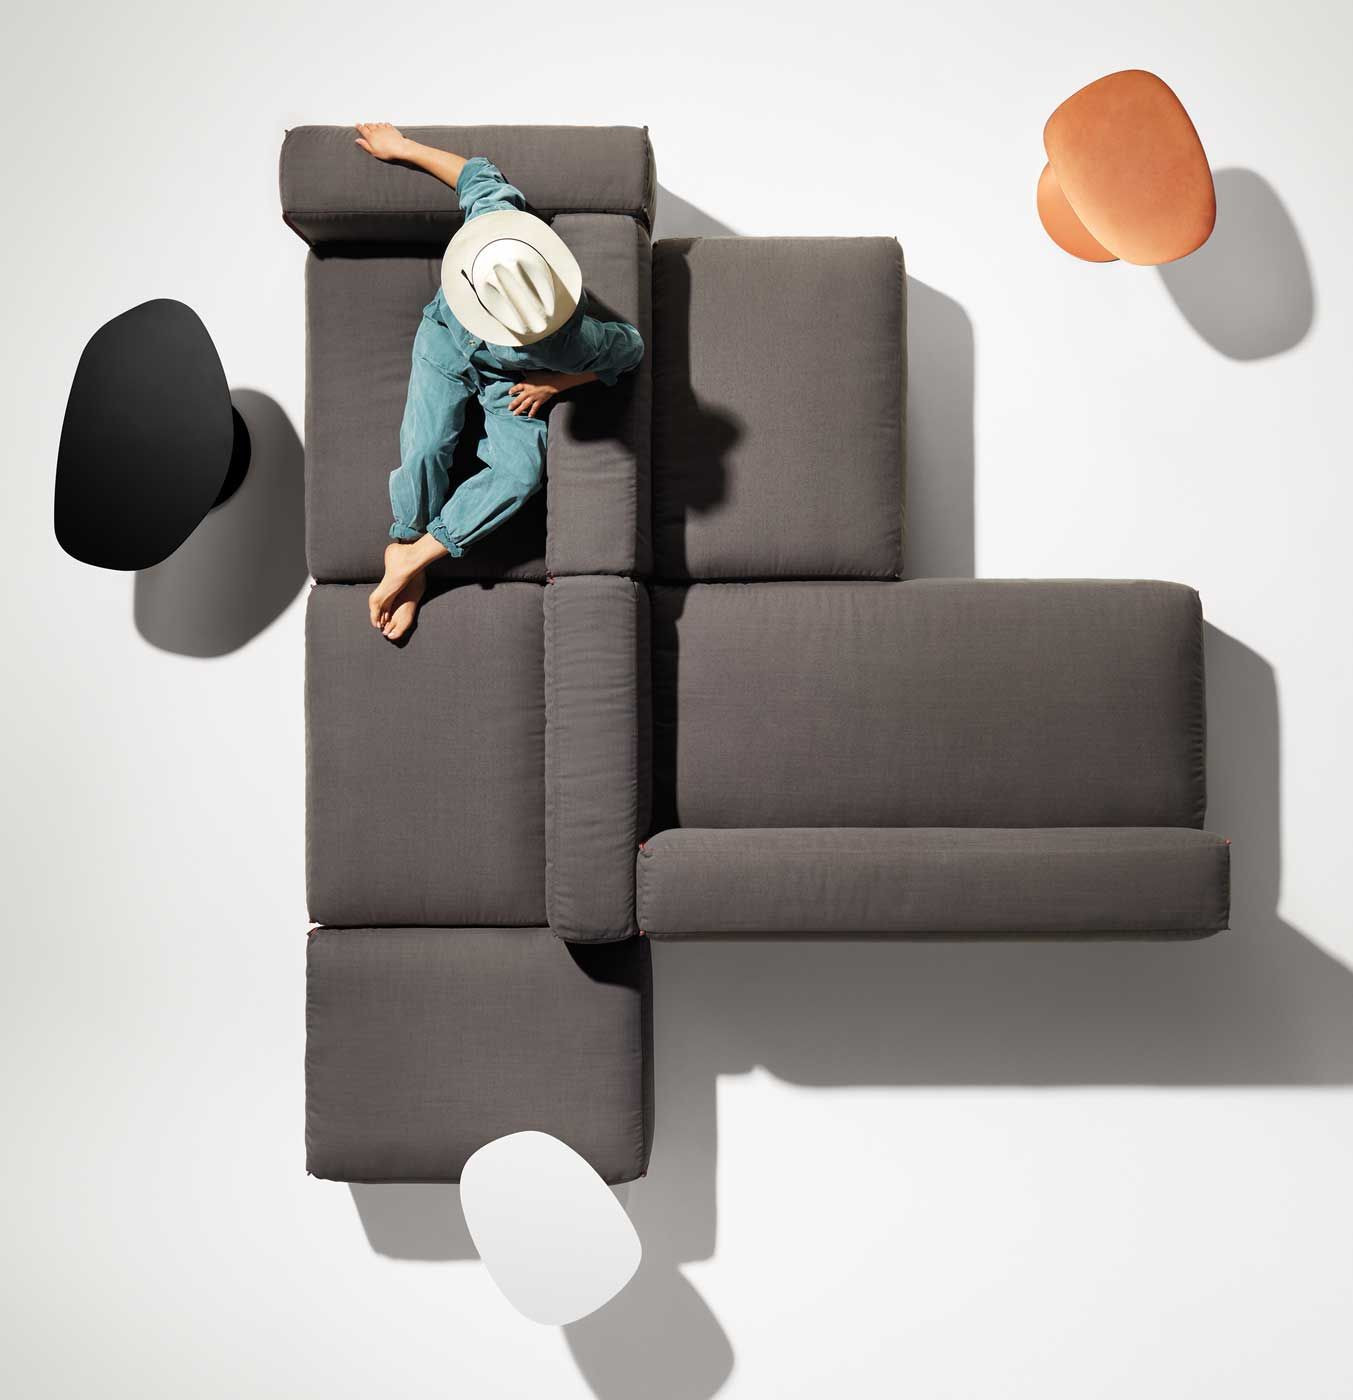 Shop The Cleon Collection Of Modular Sectional Sofas And Modern Modular  Furniture Designed By Blu Dot. Configure These Modular Sofa Pieces To Your  Liking!